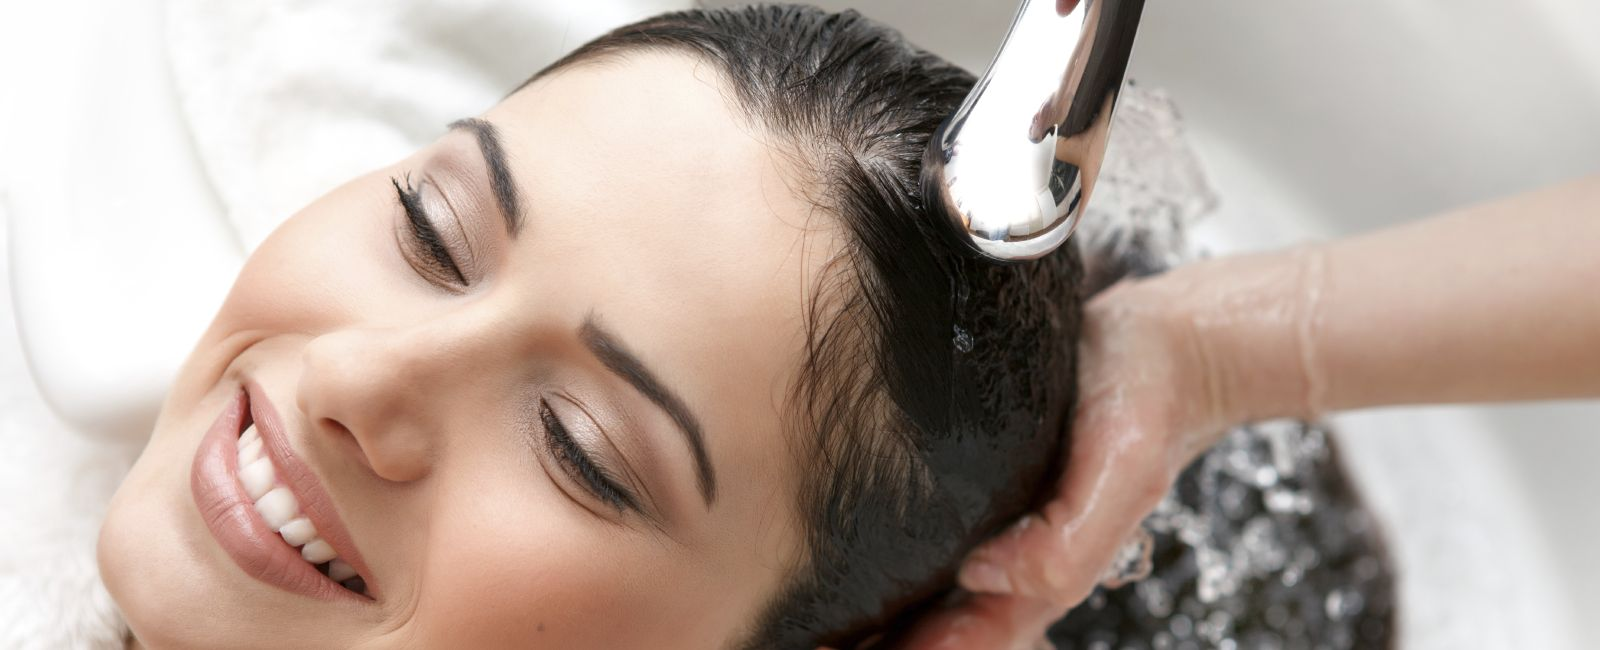 Relaxing Wash and blowdry salon